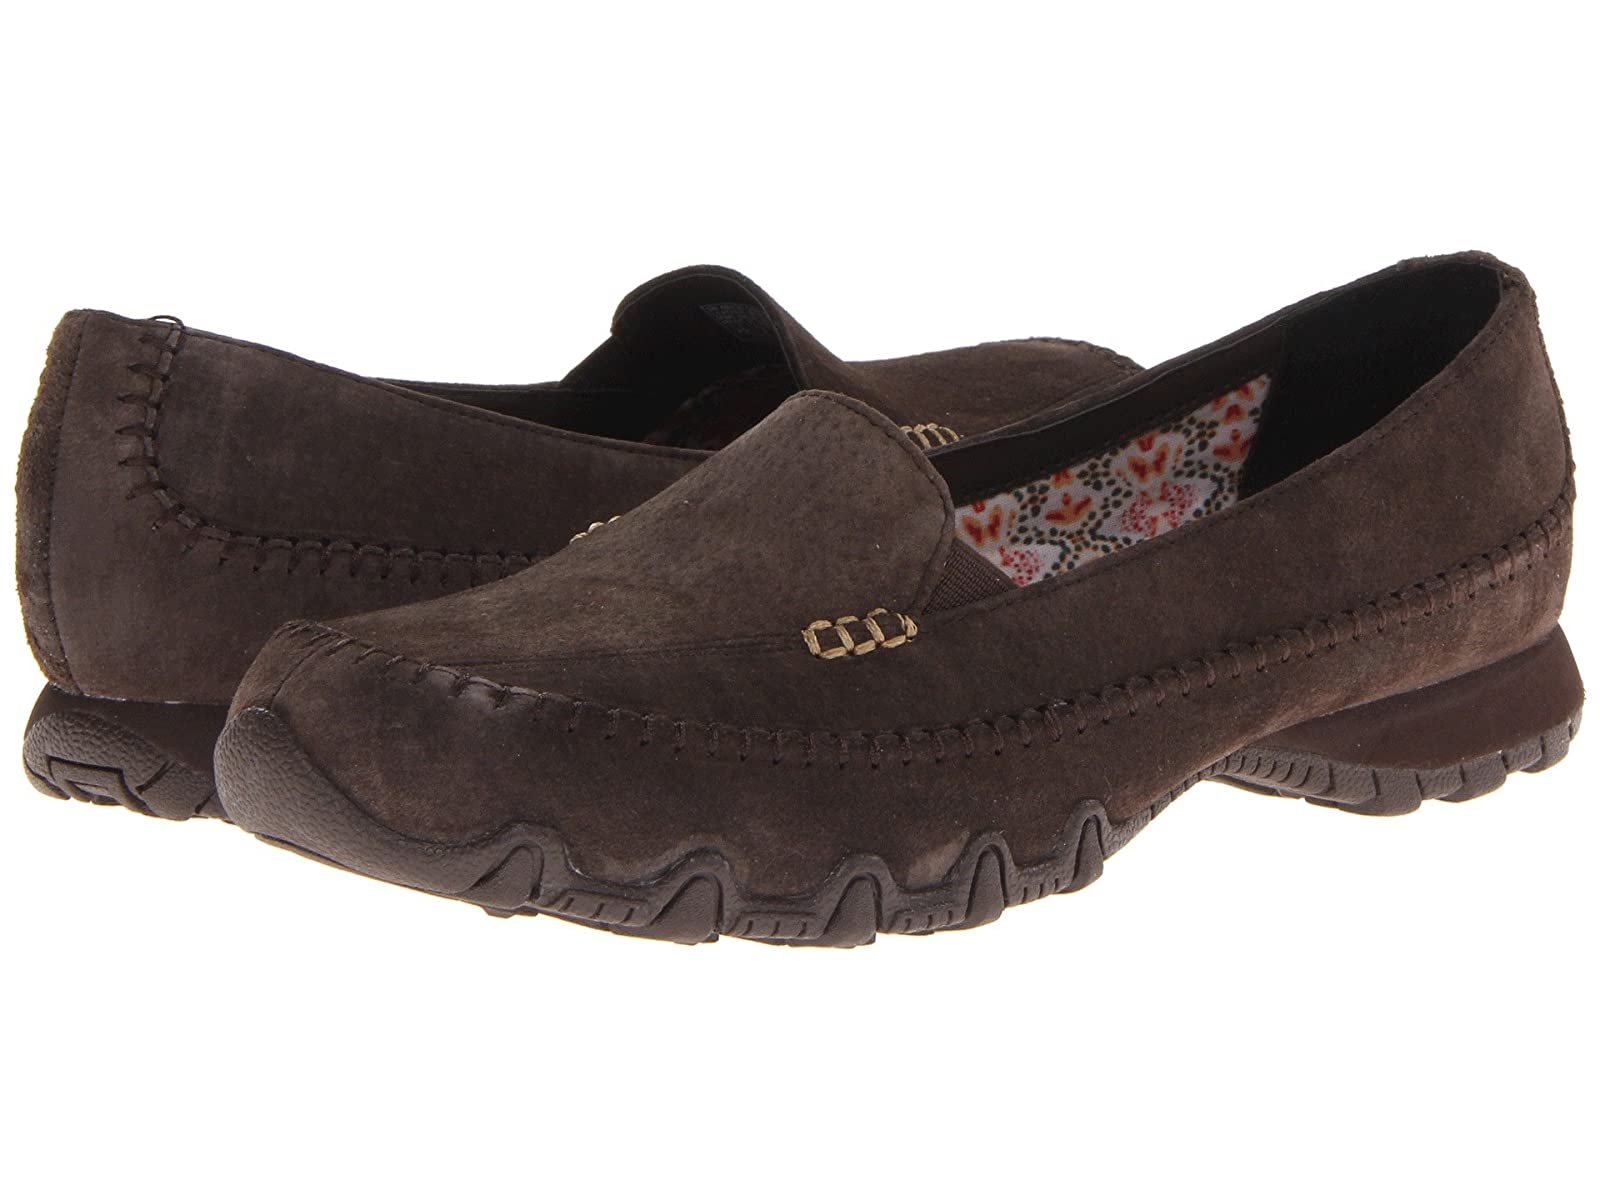 SKECHERS Relaxed Fit®: Bikers - PedestrianCheap and distinctive eye-catching shoes